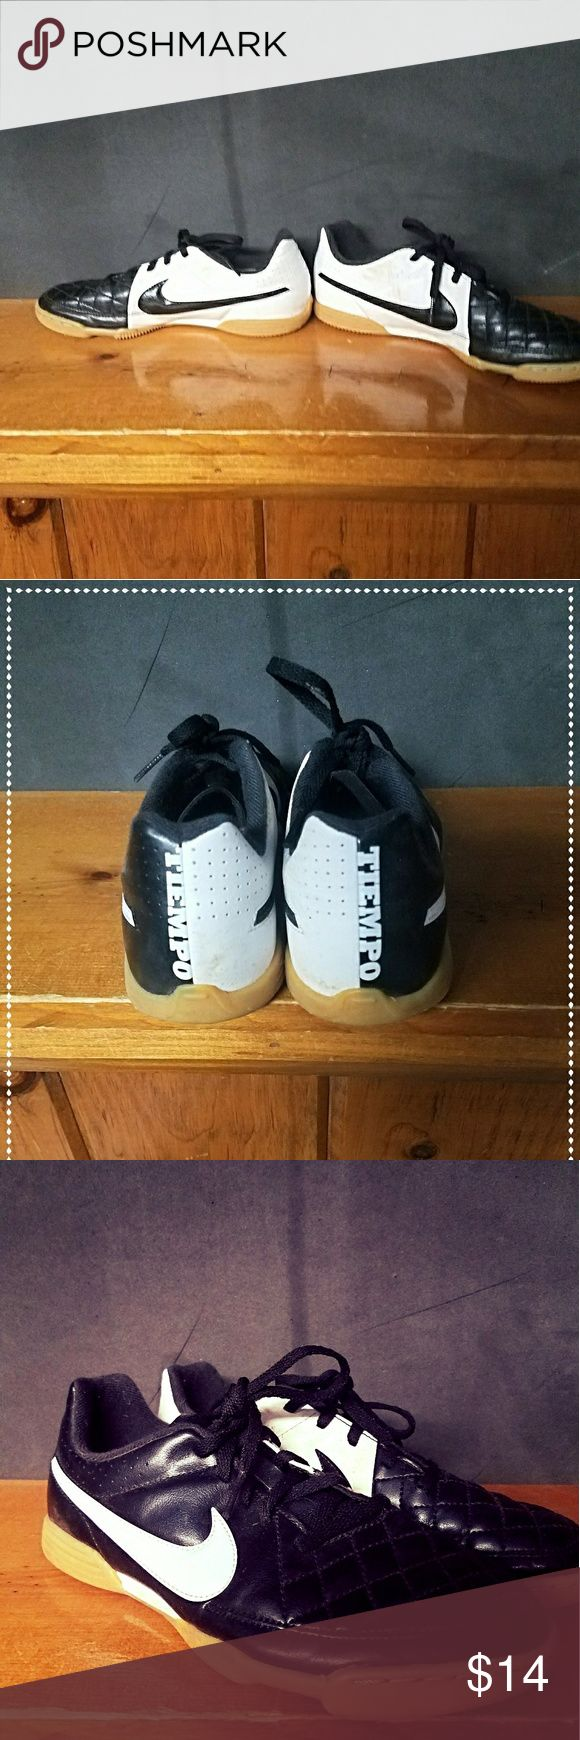 Youth Nike tiempo indoor soccer shoes Great indoor soccer shoes used for 3 games! Like new! Nike Shoes Sneakers